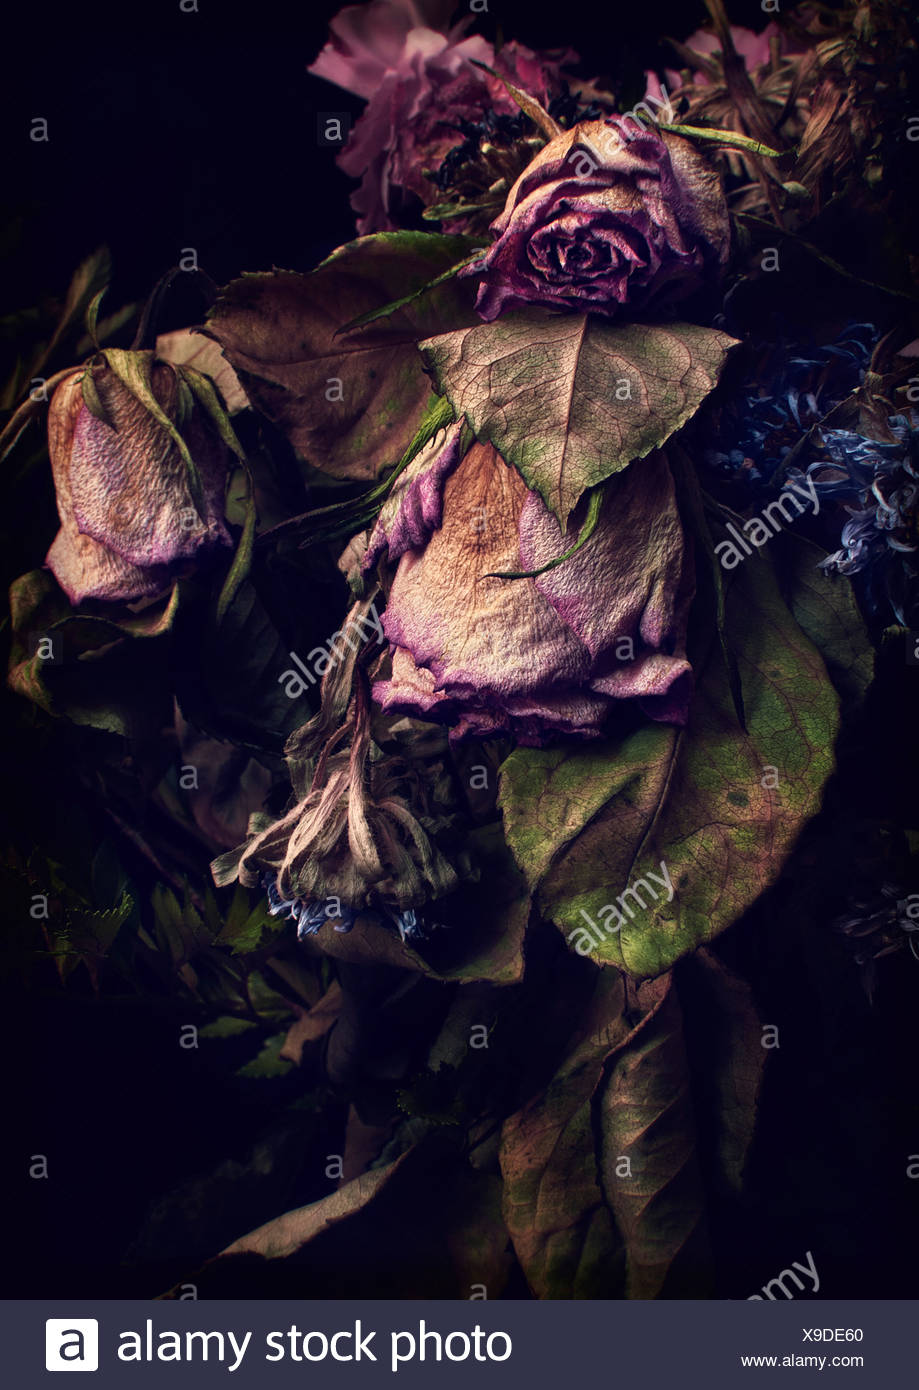 Close up of decaying flowers - Stock Image